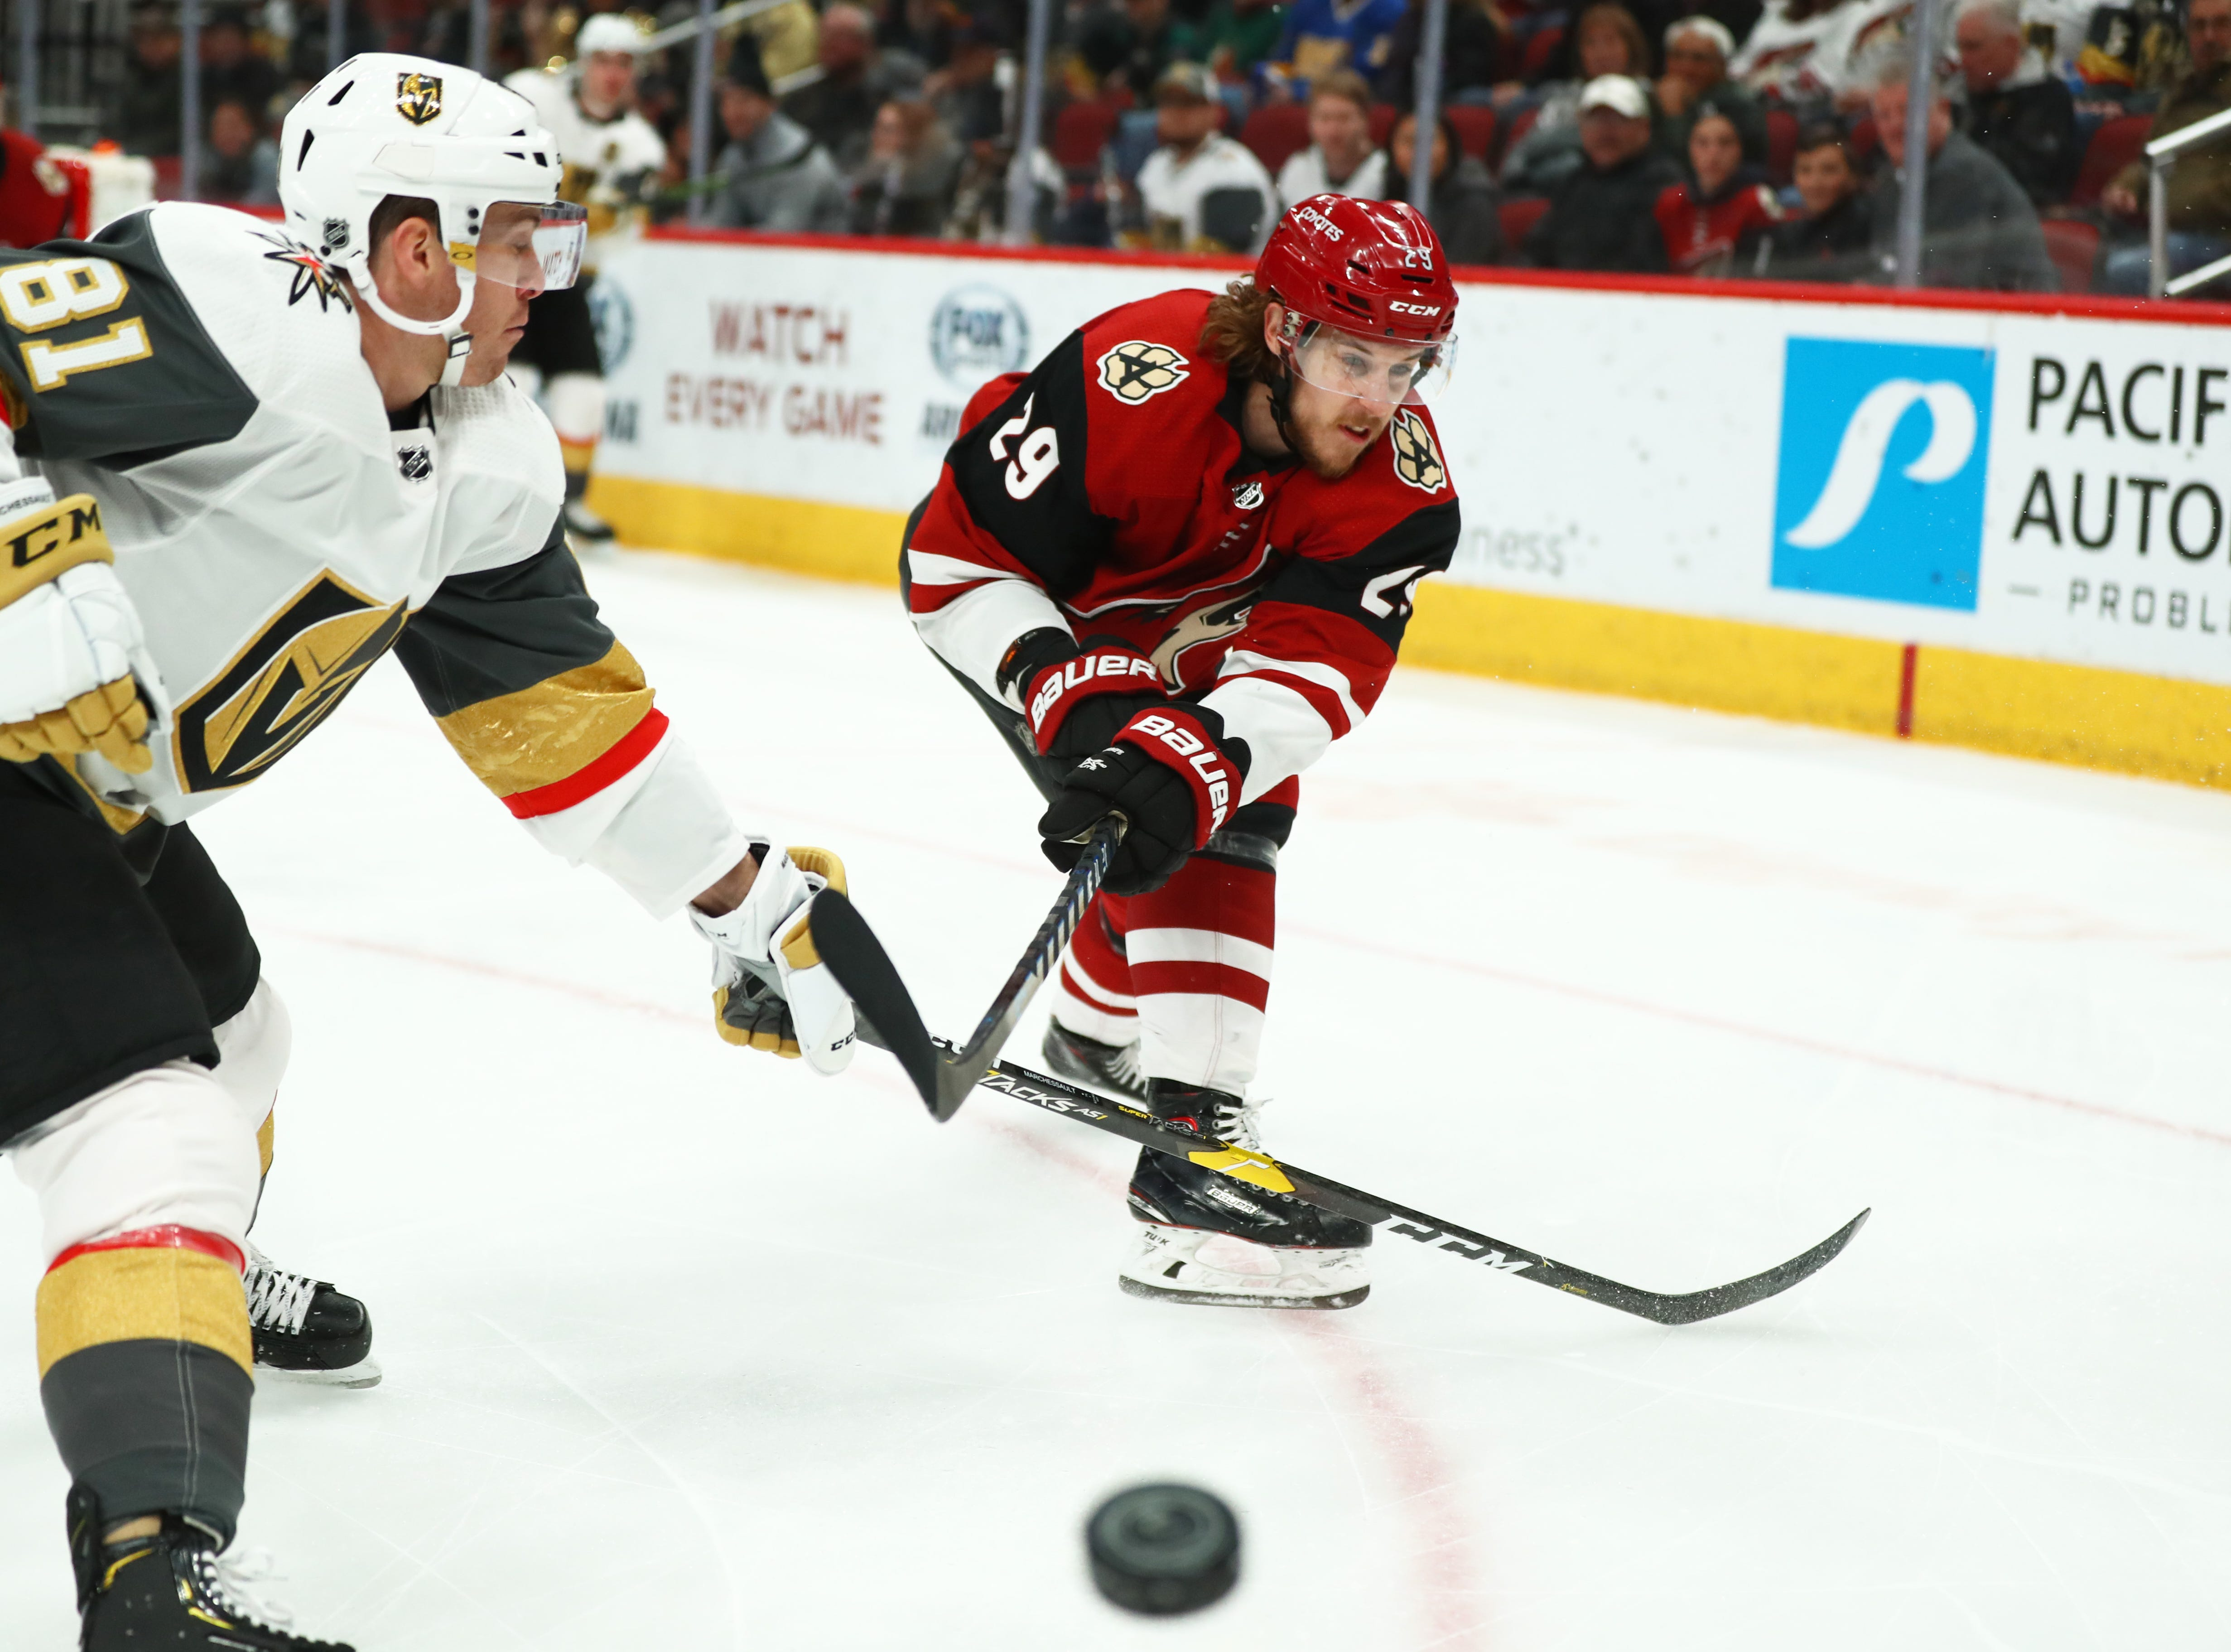 Dec 30, 2018; Glendale, AZ, USA; Arizona Coyotes right wing Mario Kempe (29) moves the puck against Vegas Golden Knights center Jonathan Marchessault (81) in the first period at Gila River Arena. Mandatory Credit: Mark J. Rebilas-USA TODAY Sports